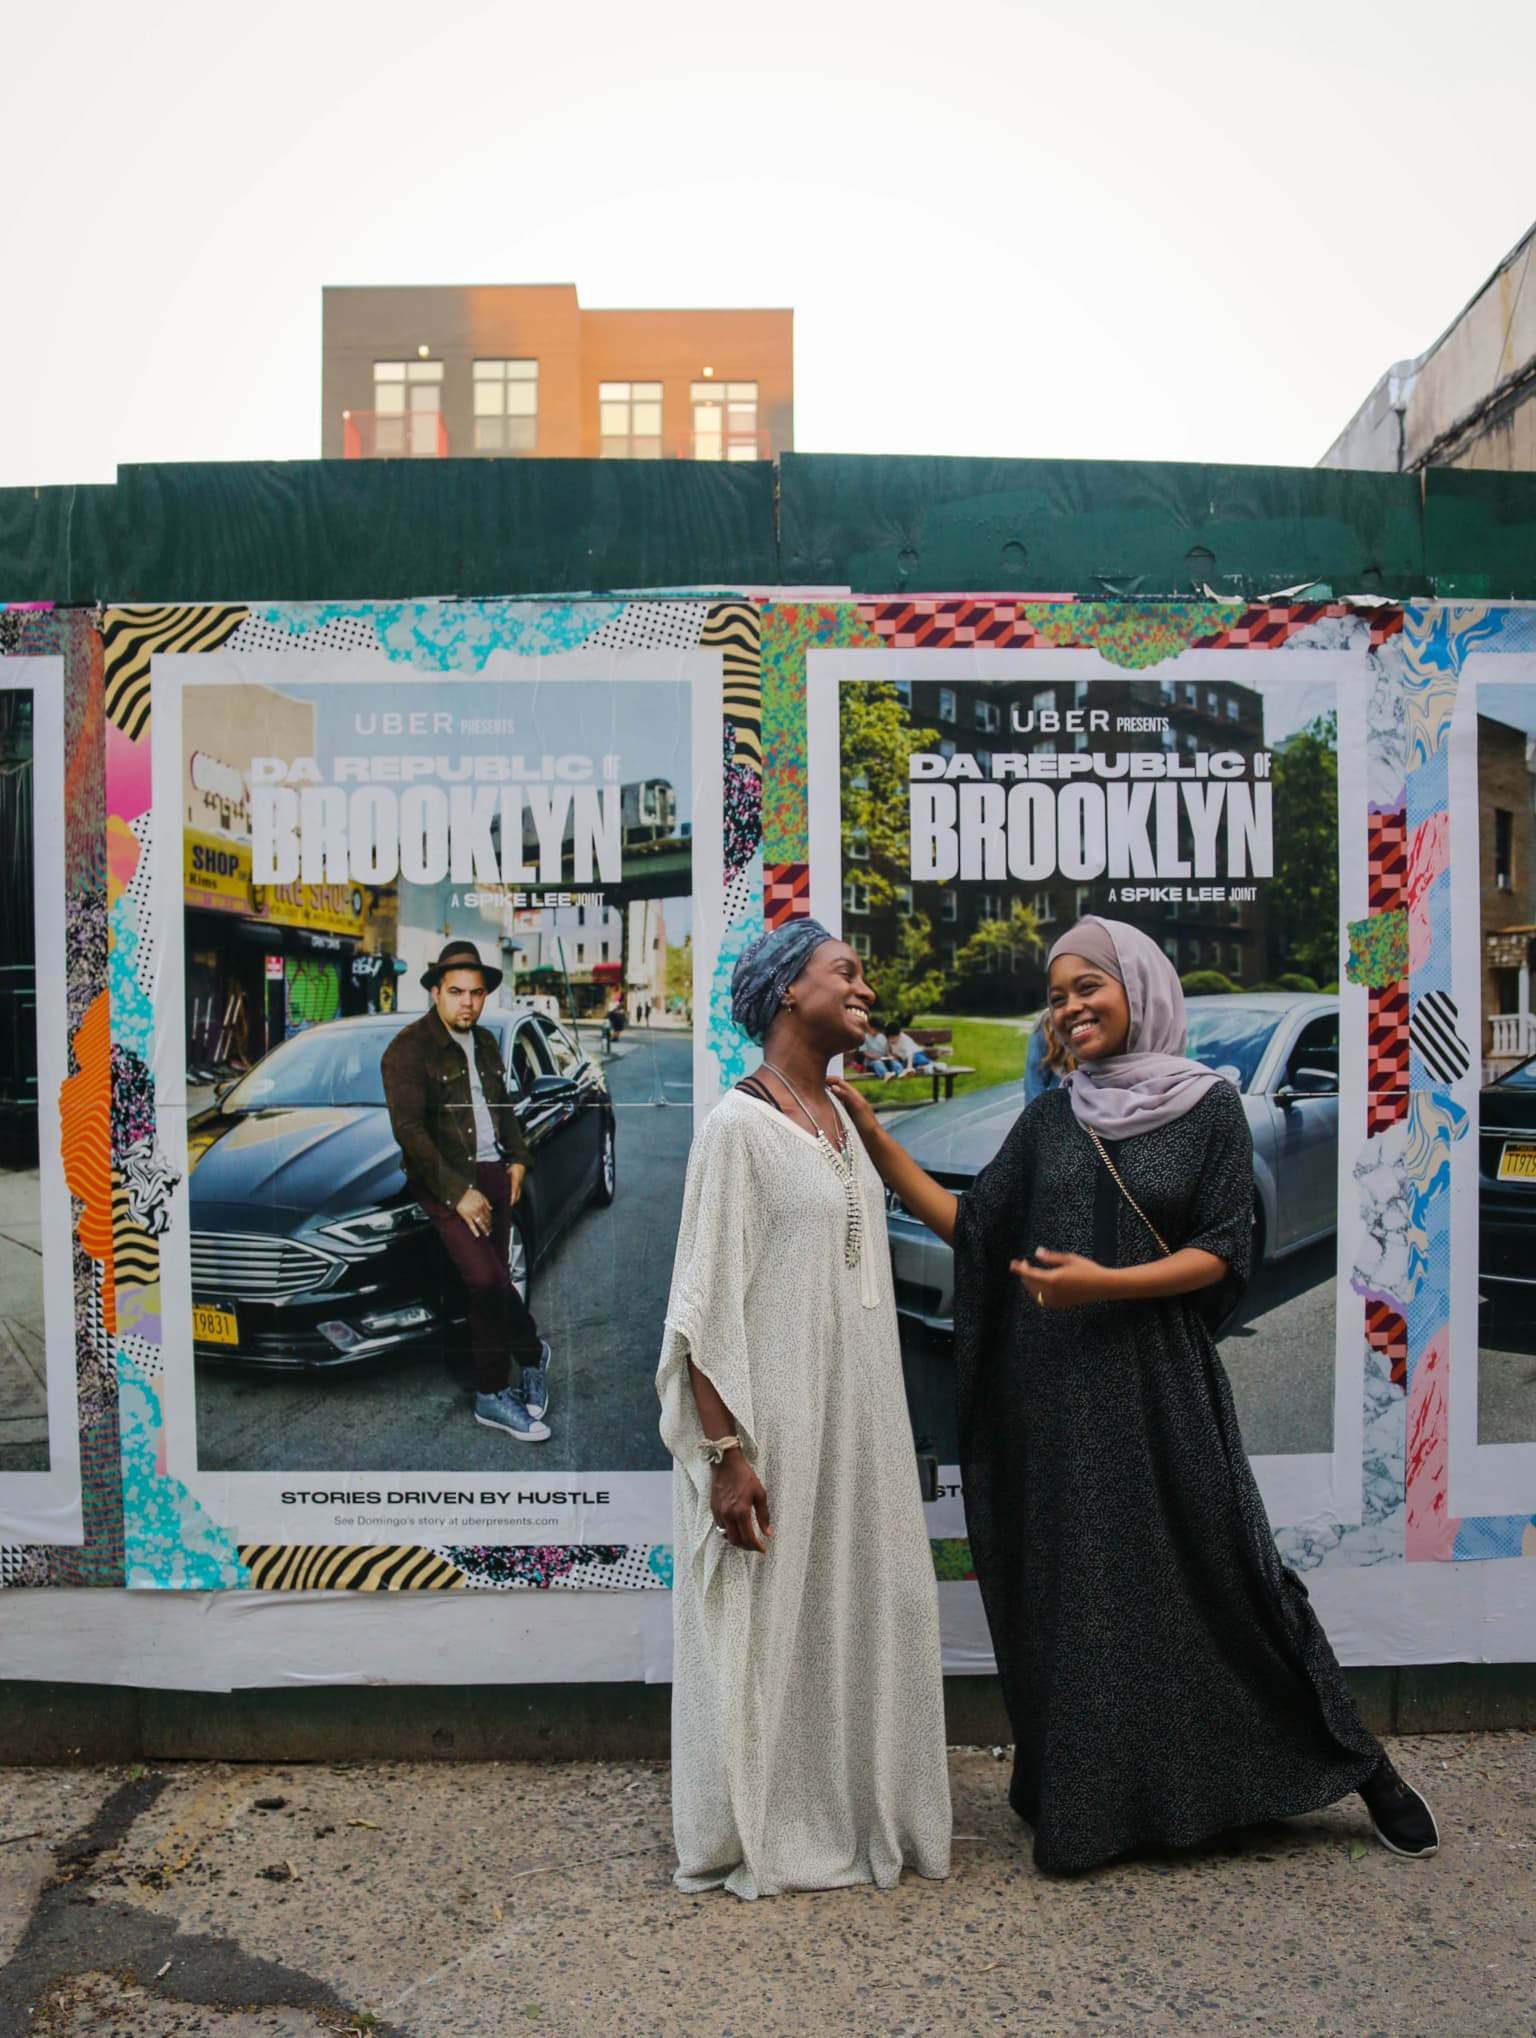 Uber Presents: Da Republic of Brooklyn by Spike Lee